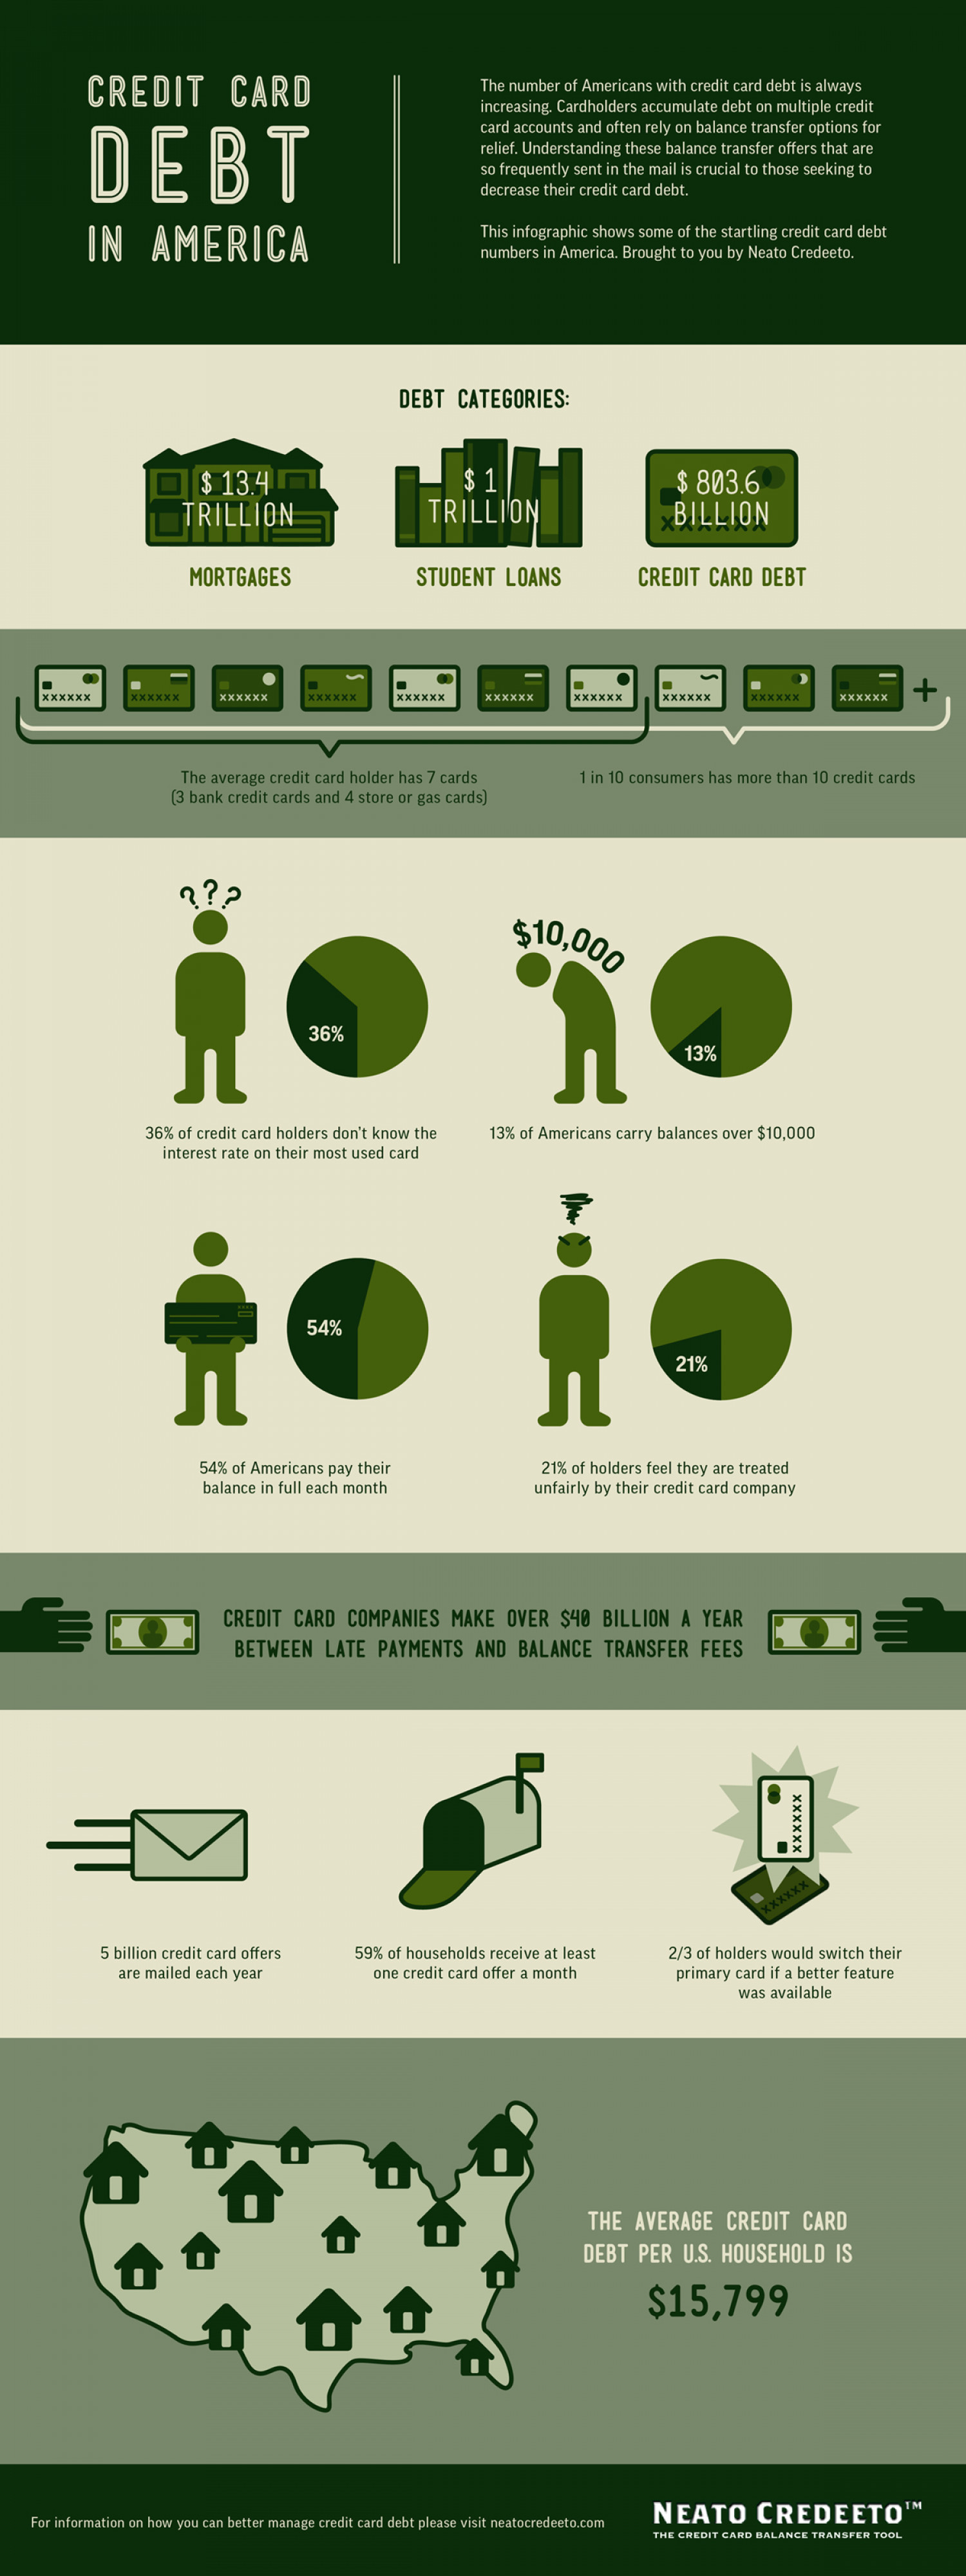 Credit Card Debt in America Infographic